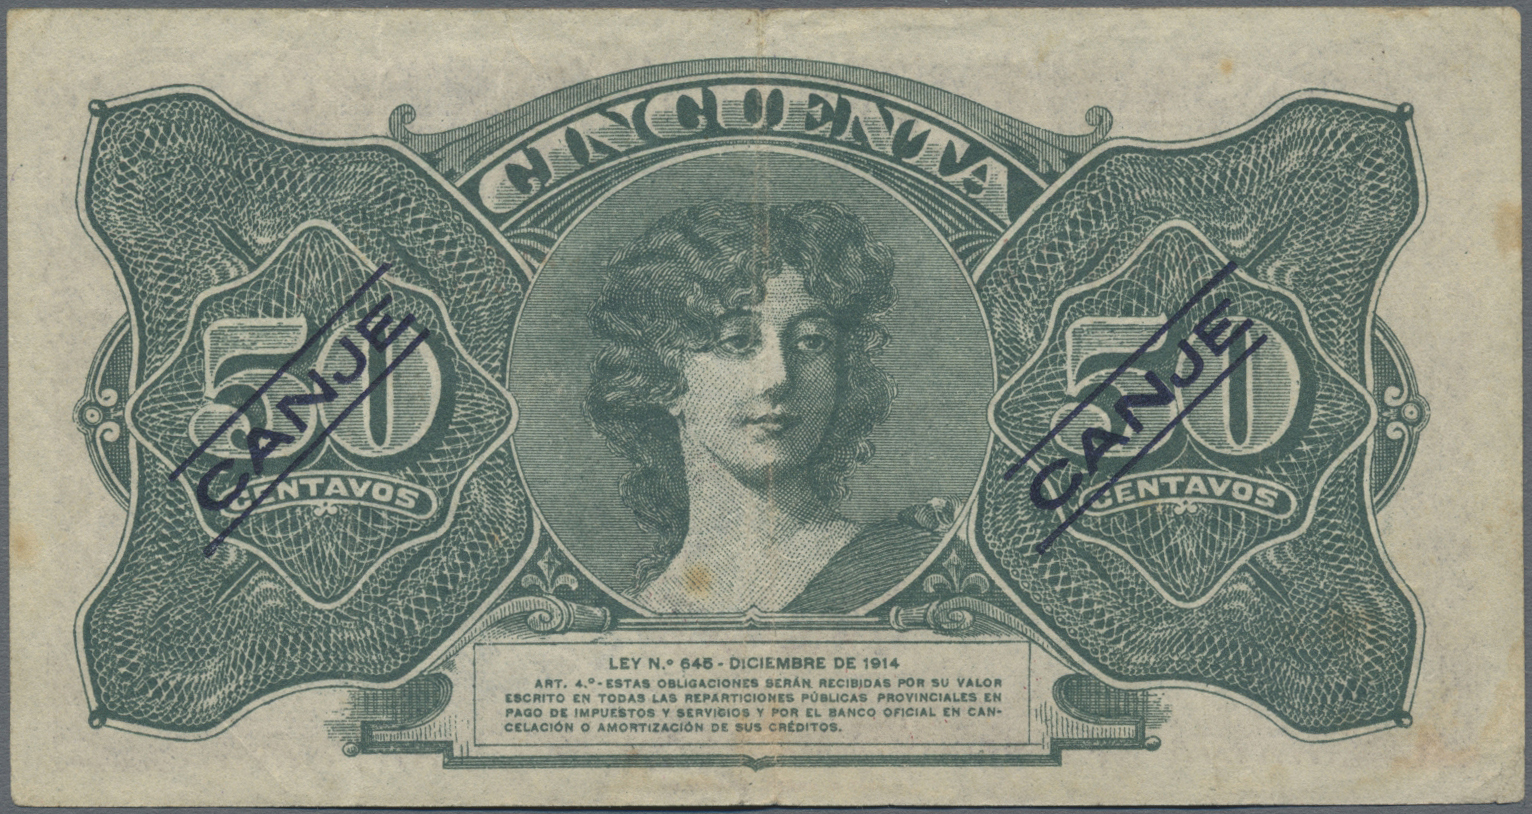 Lot 00021 - Argentina / Argentinien | Banknoten  -  Auktionshaus Christoph Gärtner GmbH & Co. KG Sale #48 The Banknotes